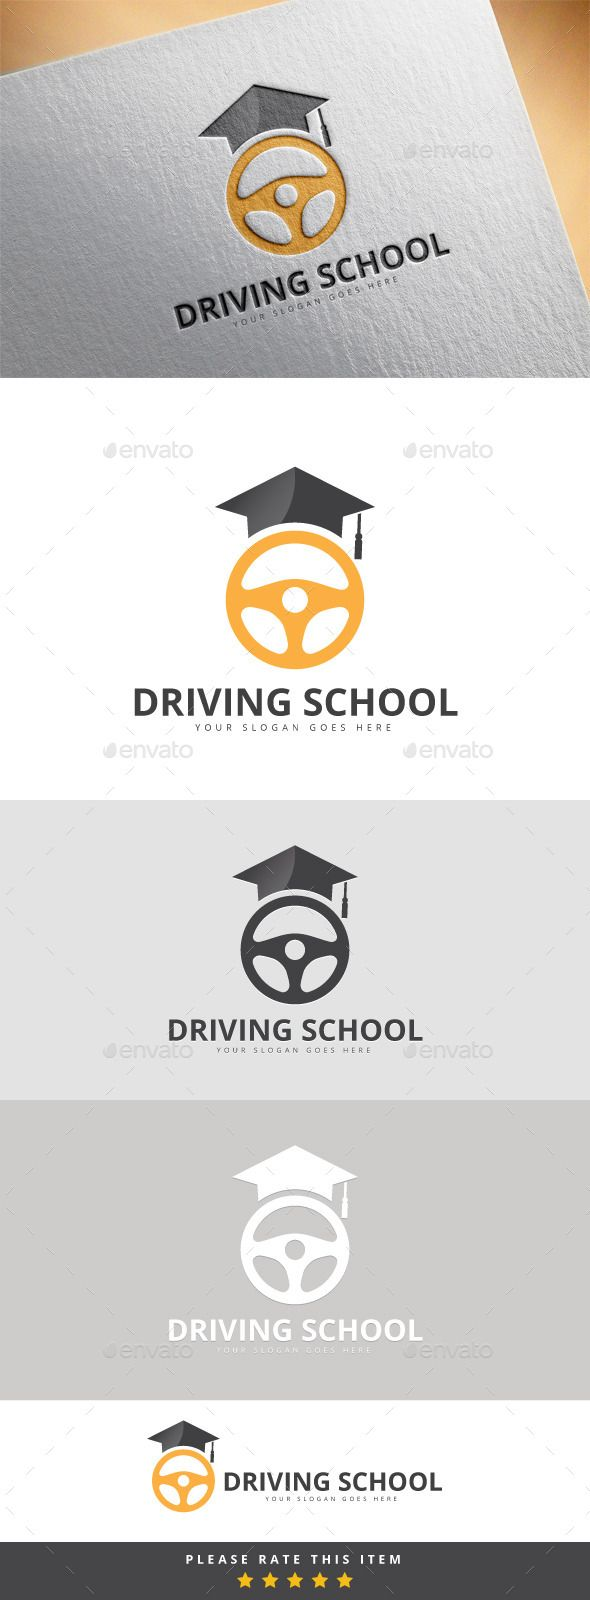 Driving School Logo                                                                                                                                                                                 More